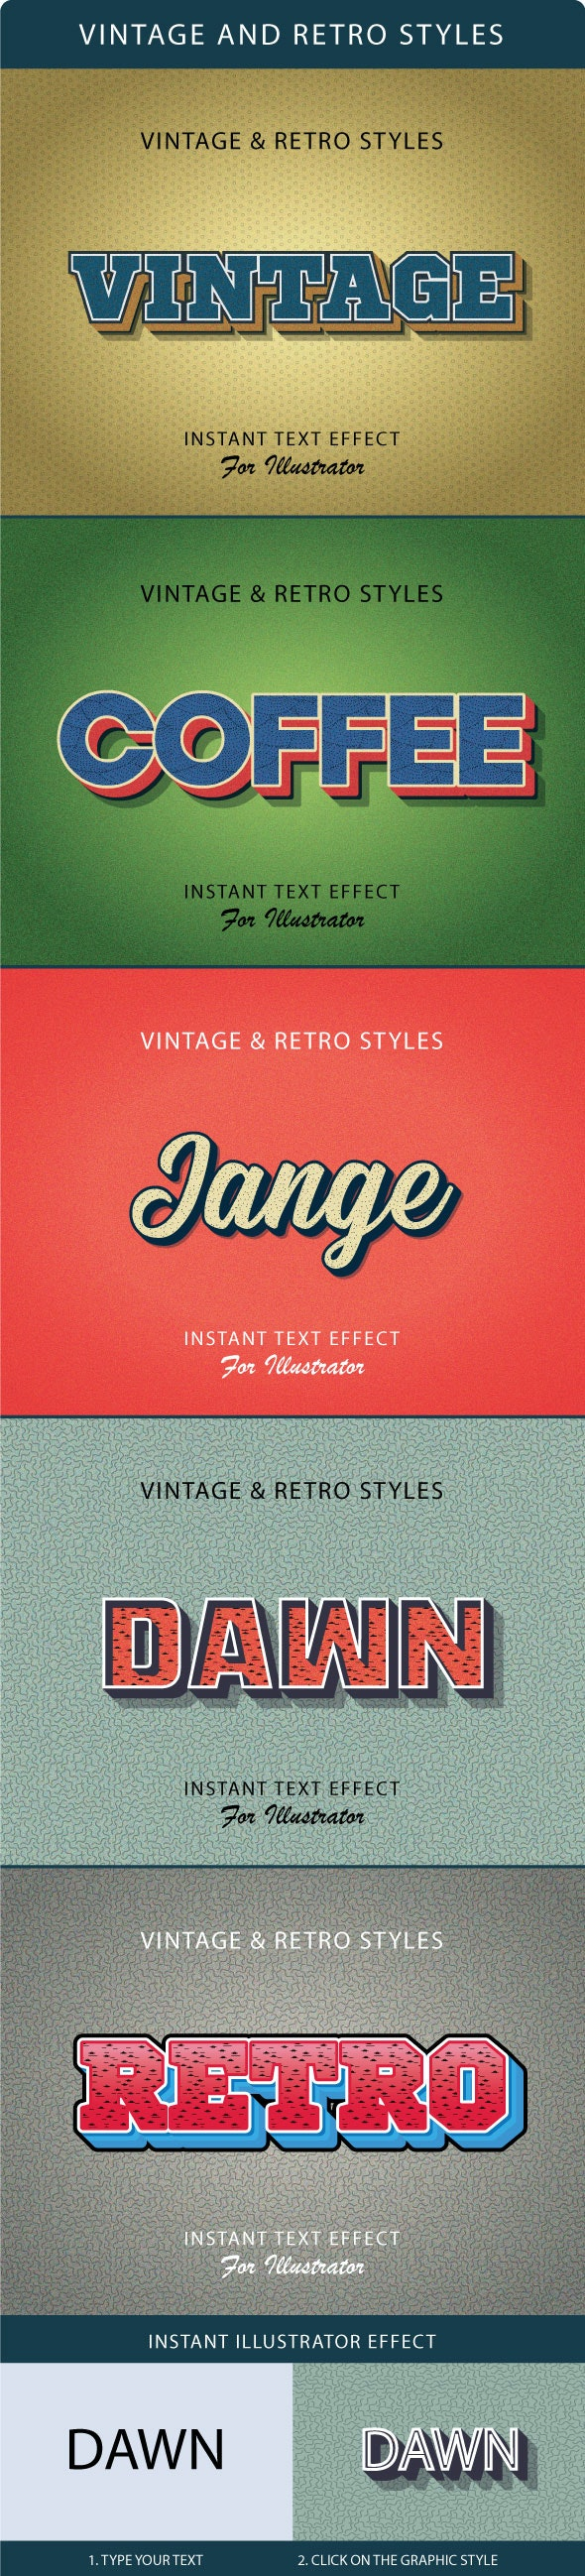 Vintage And Retro Styles - Styles Illustrator